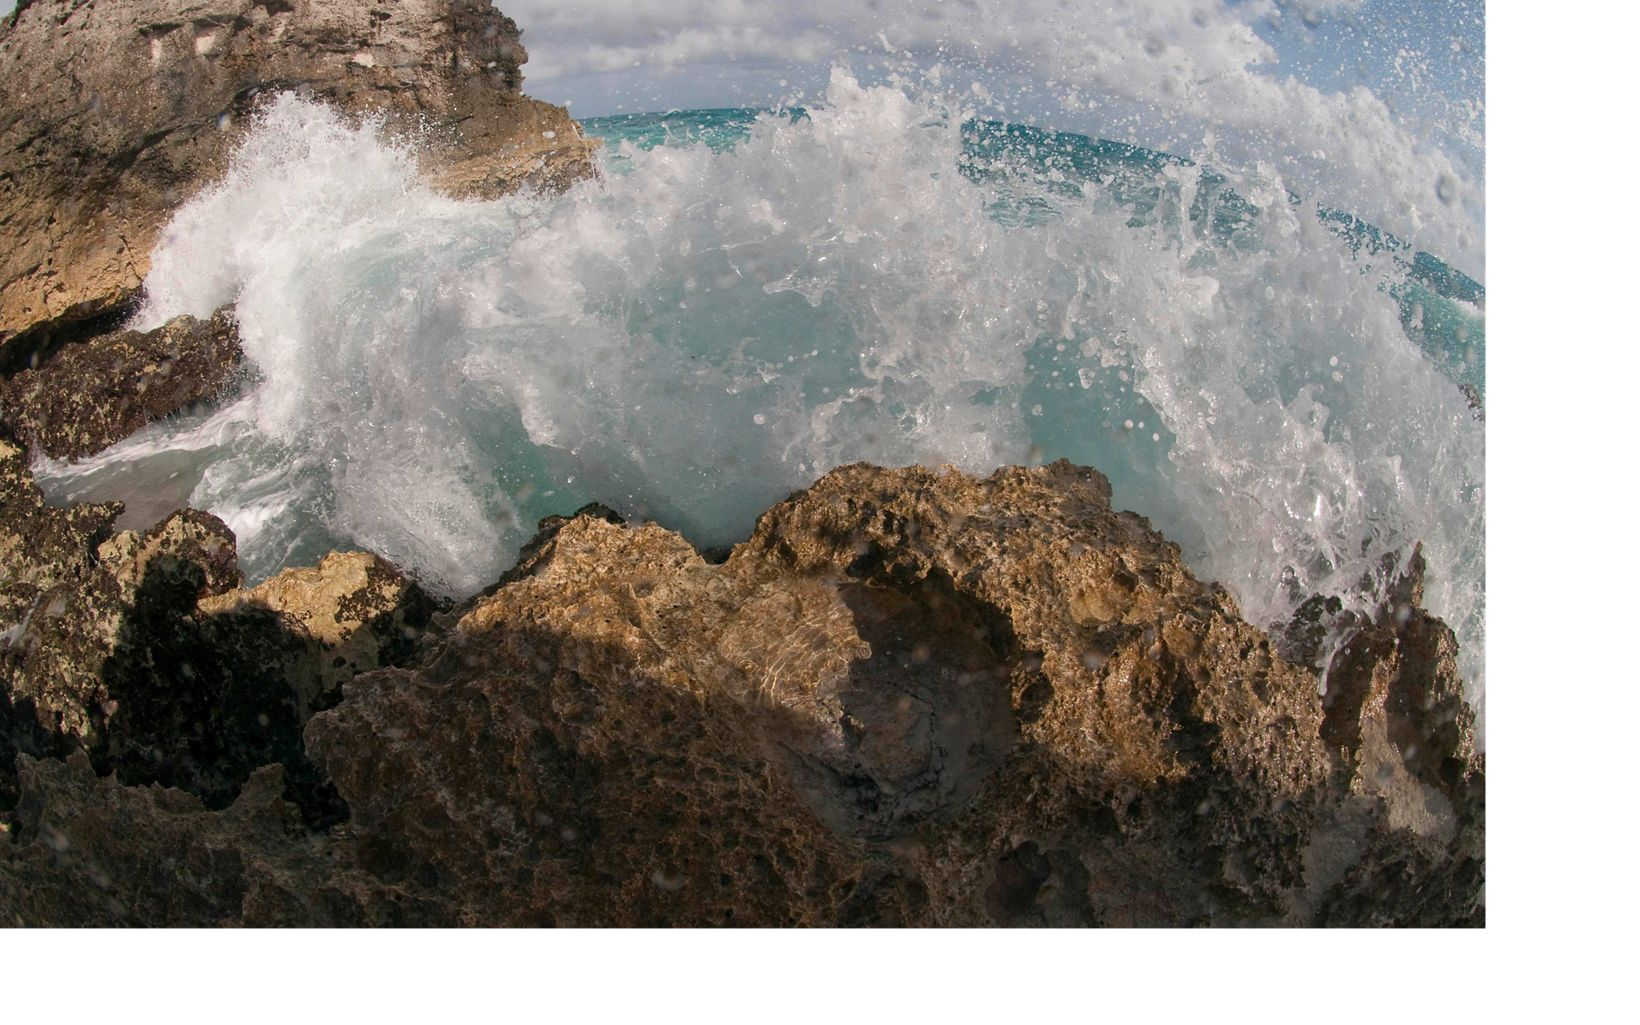 Water splashes against the rocky shore.